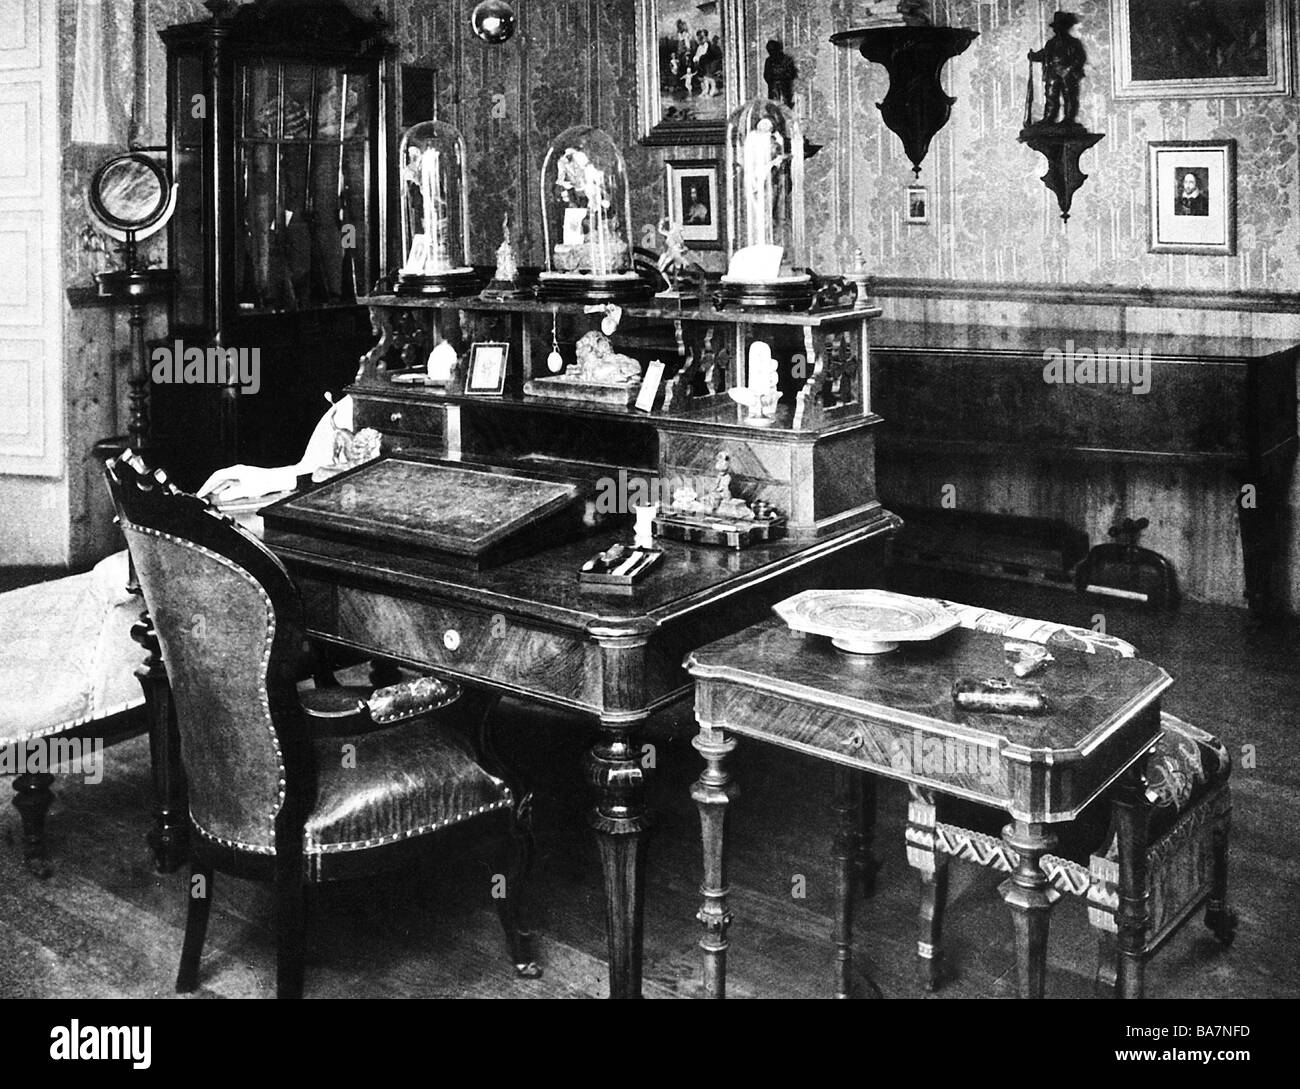 Verdi, Giuseppe, 10.10.1813 - 27.1.1901, Italian composer, his desk, Villa Sant' Agata, Additional-Rights-Clearances - Stock Image